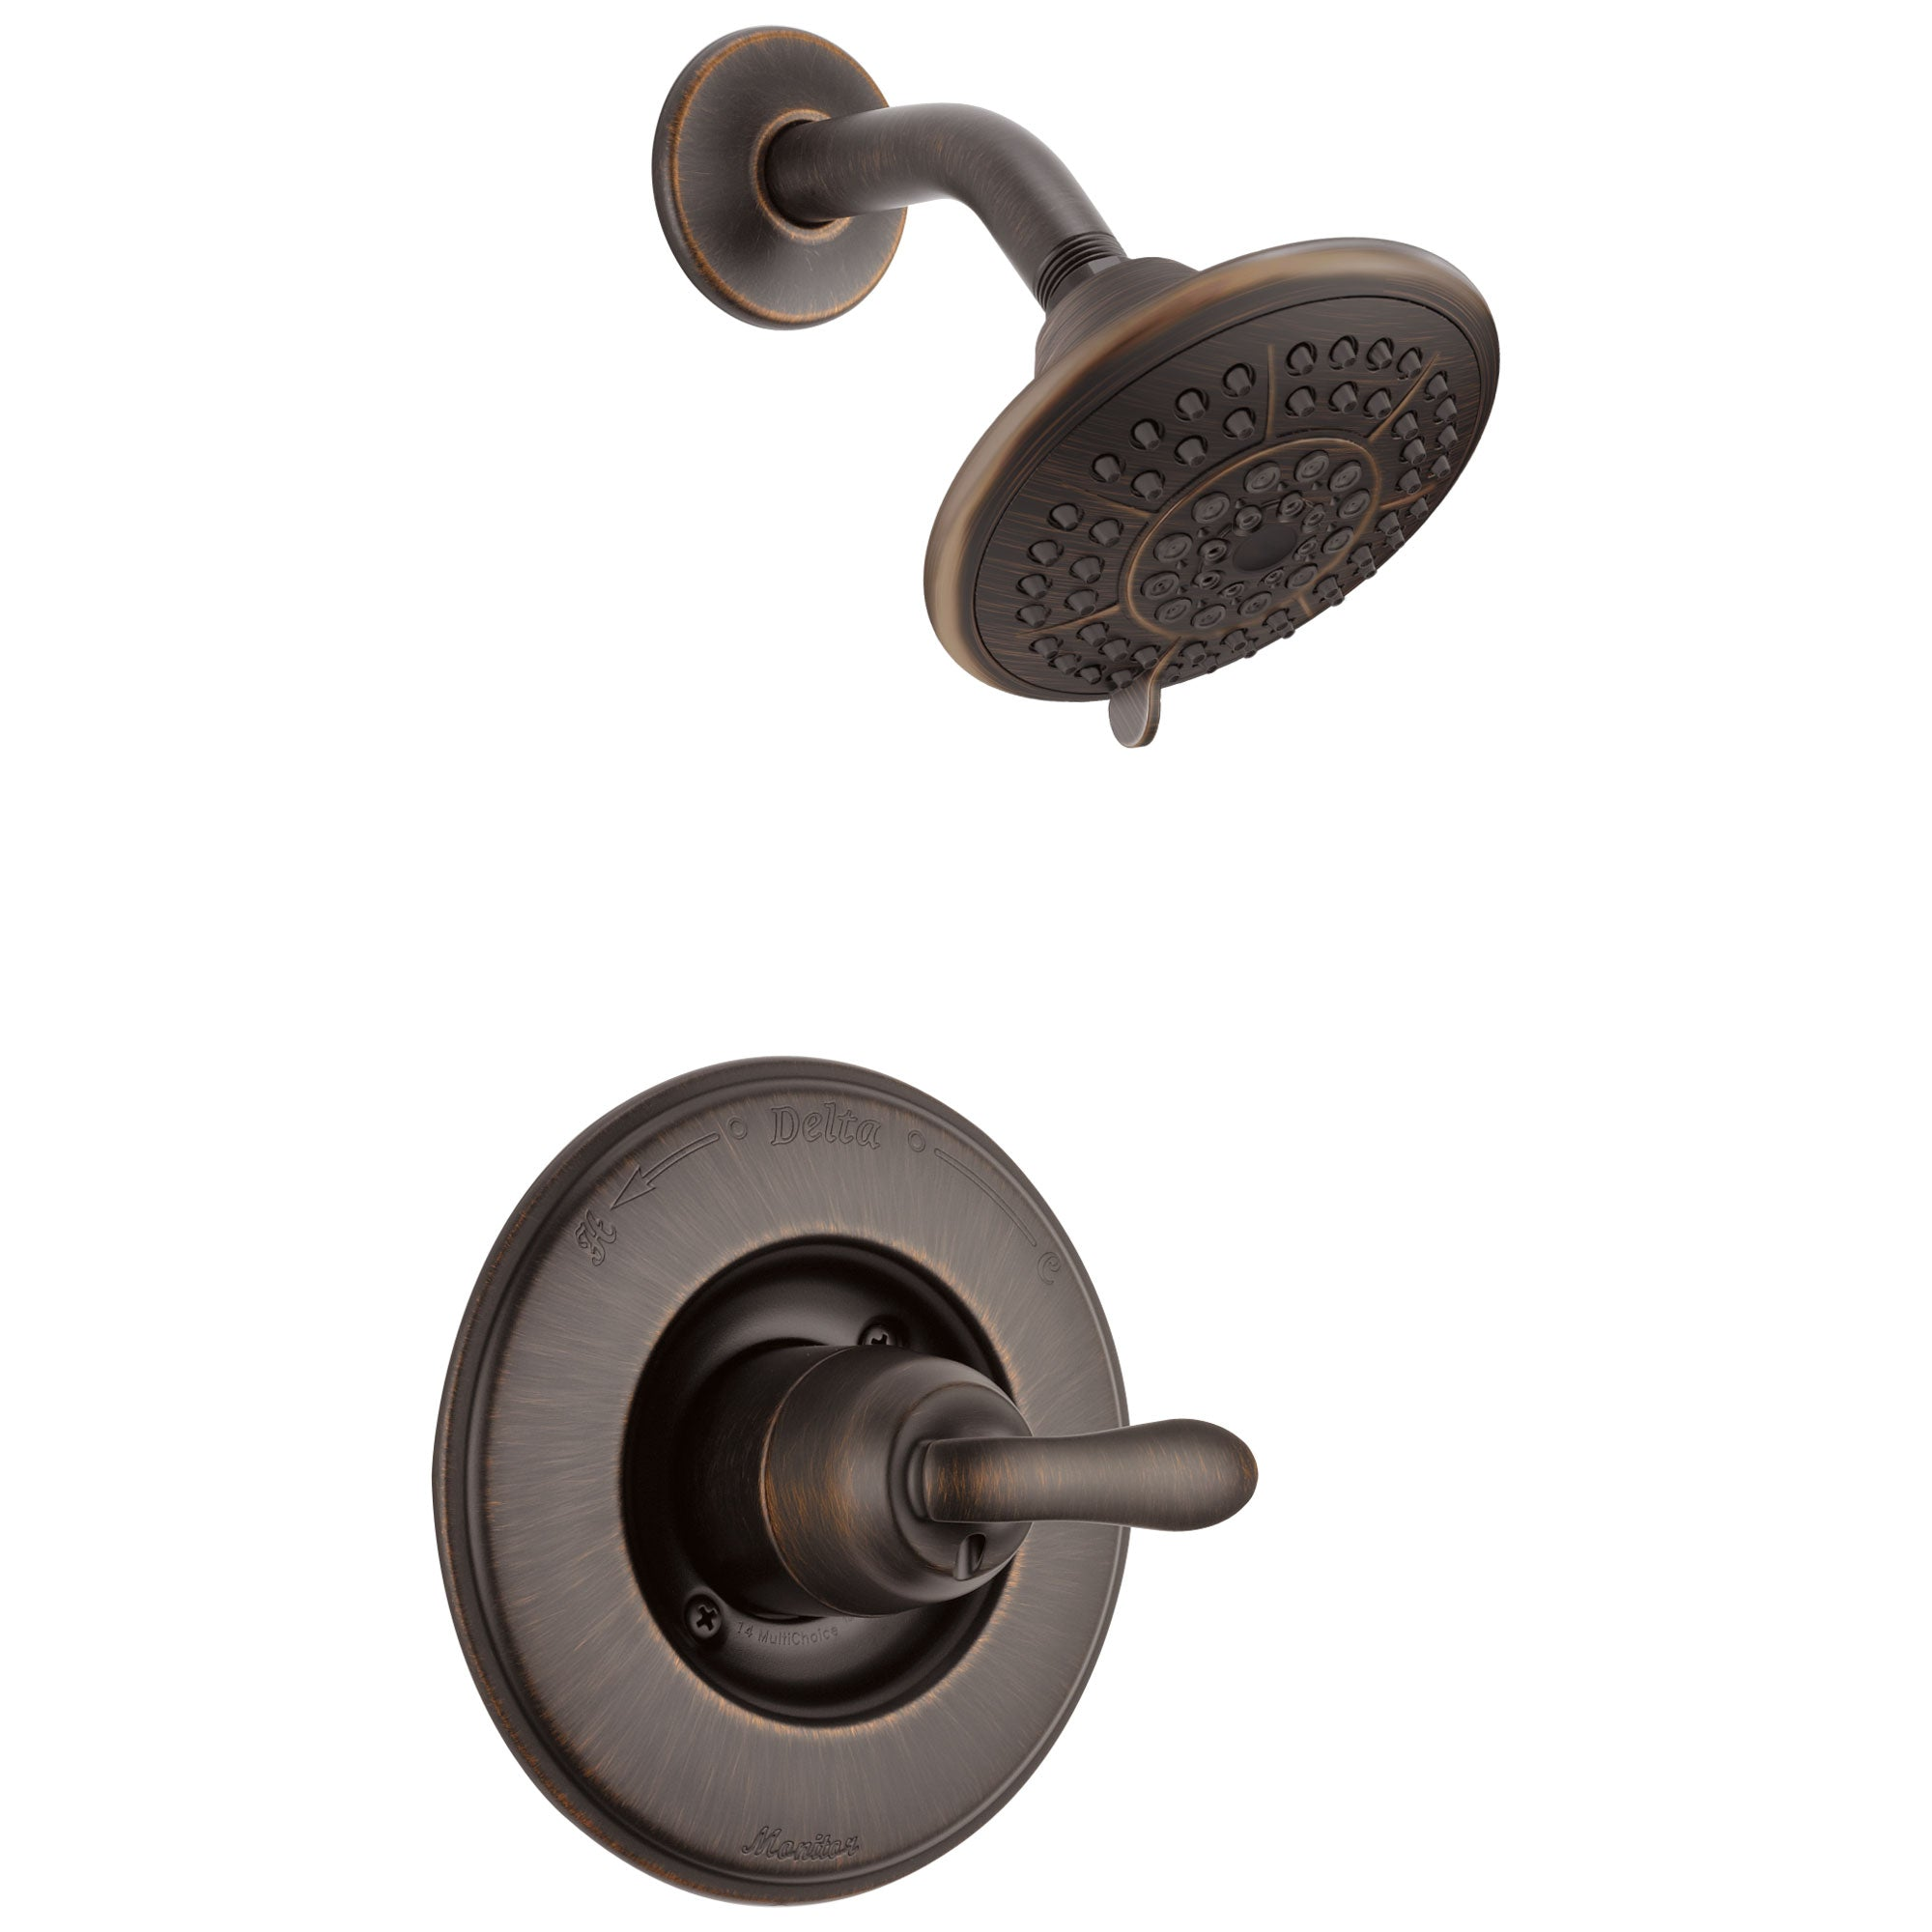 Delta Linden Venetian Bronze Single Handle Shower Only Faucet with Valve D661V